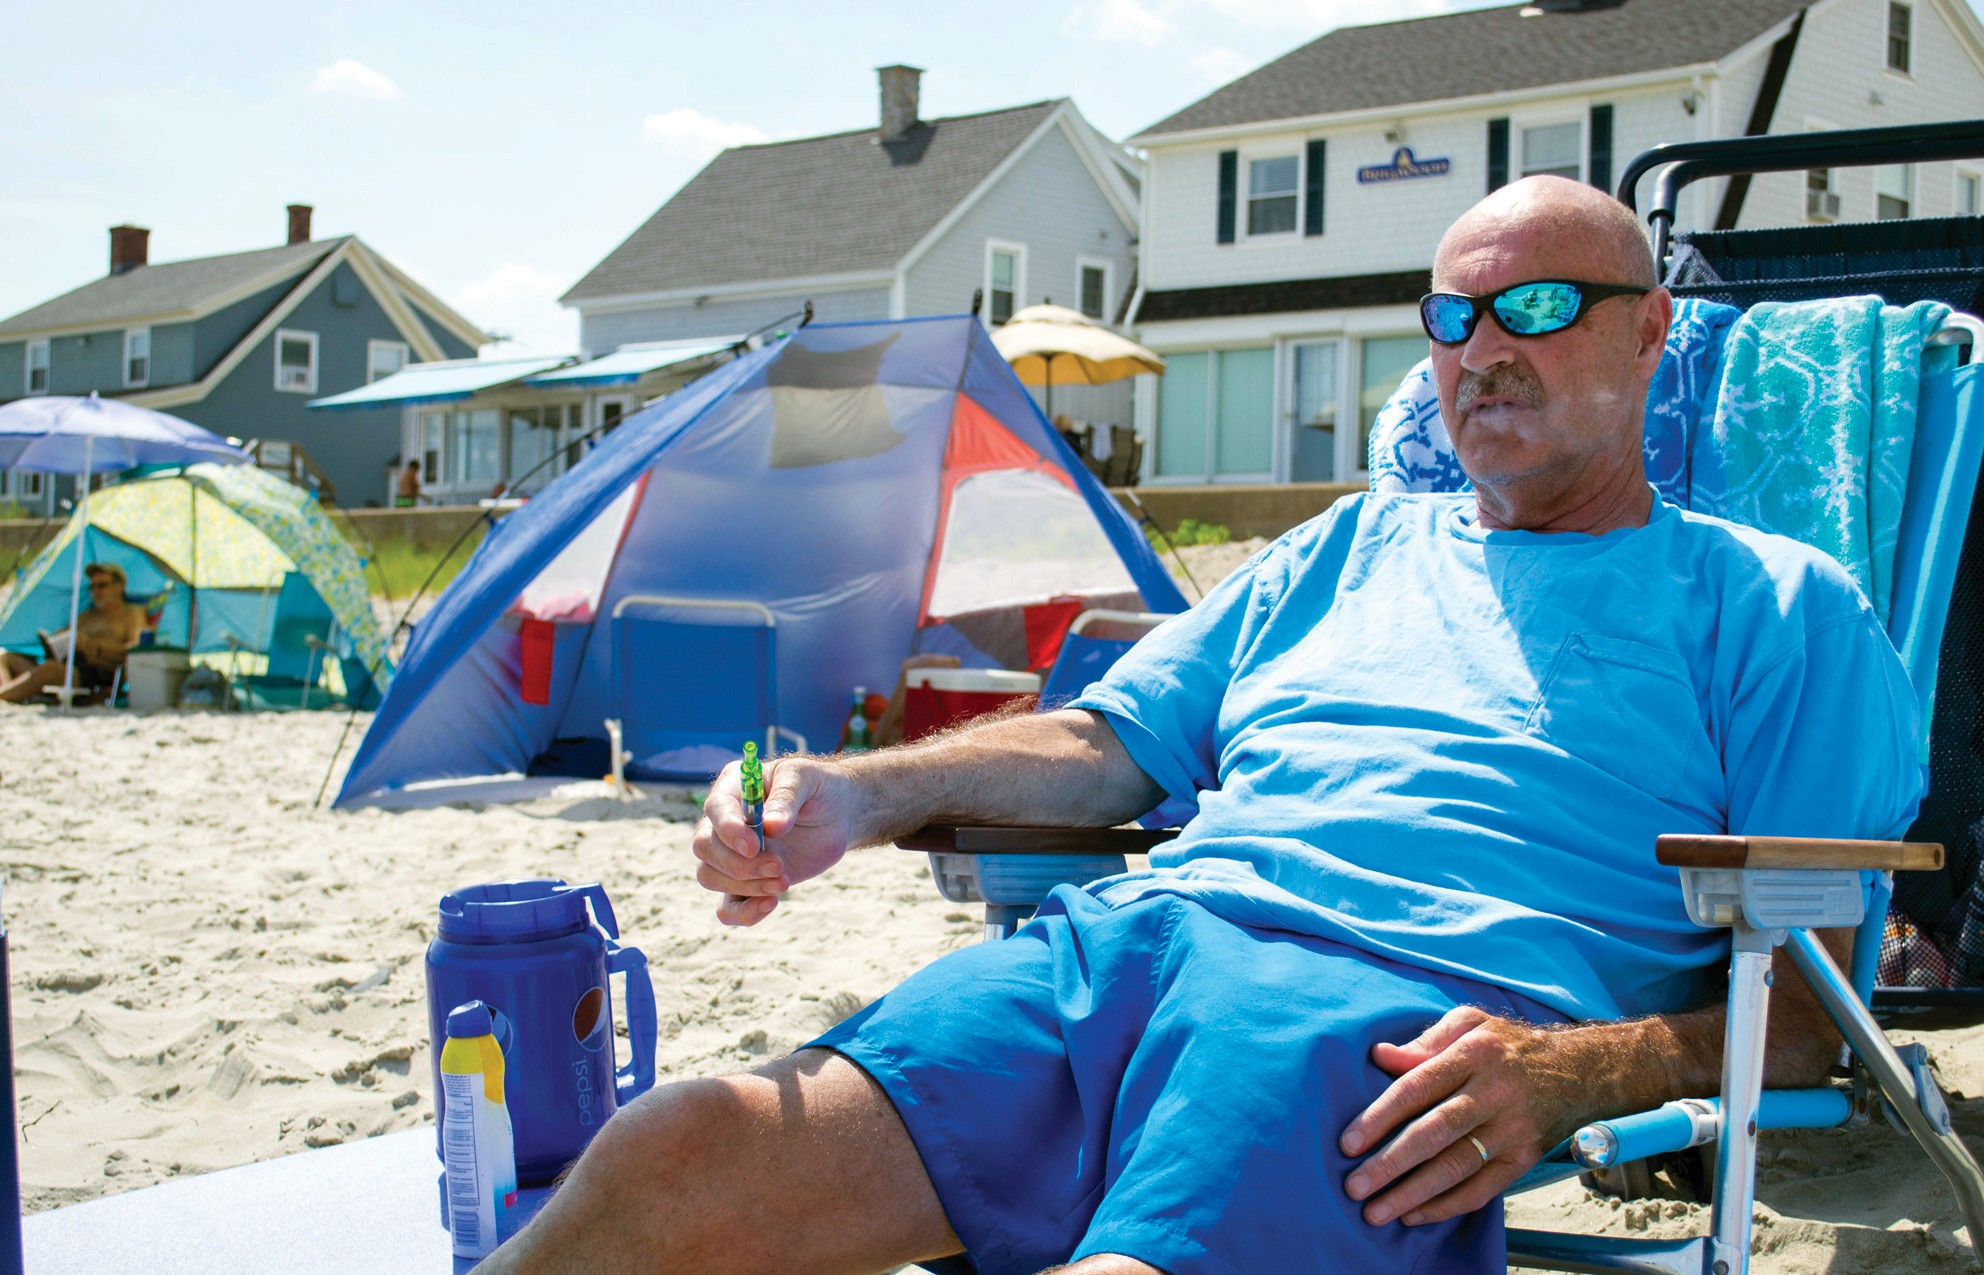 Mark Rowen of Burlington, Vt., smokes from a vaporizer pen at Wells Beach in this photo from August. The town on Tuesday passed an ordinance banning smoking of tobacco and plant products in all forms on town beaches.